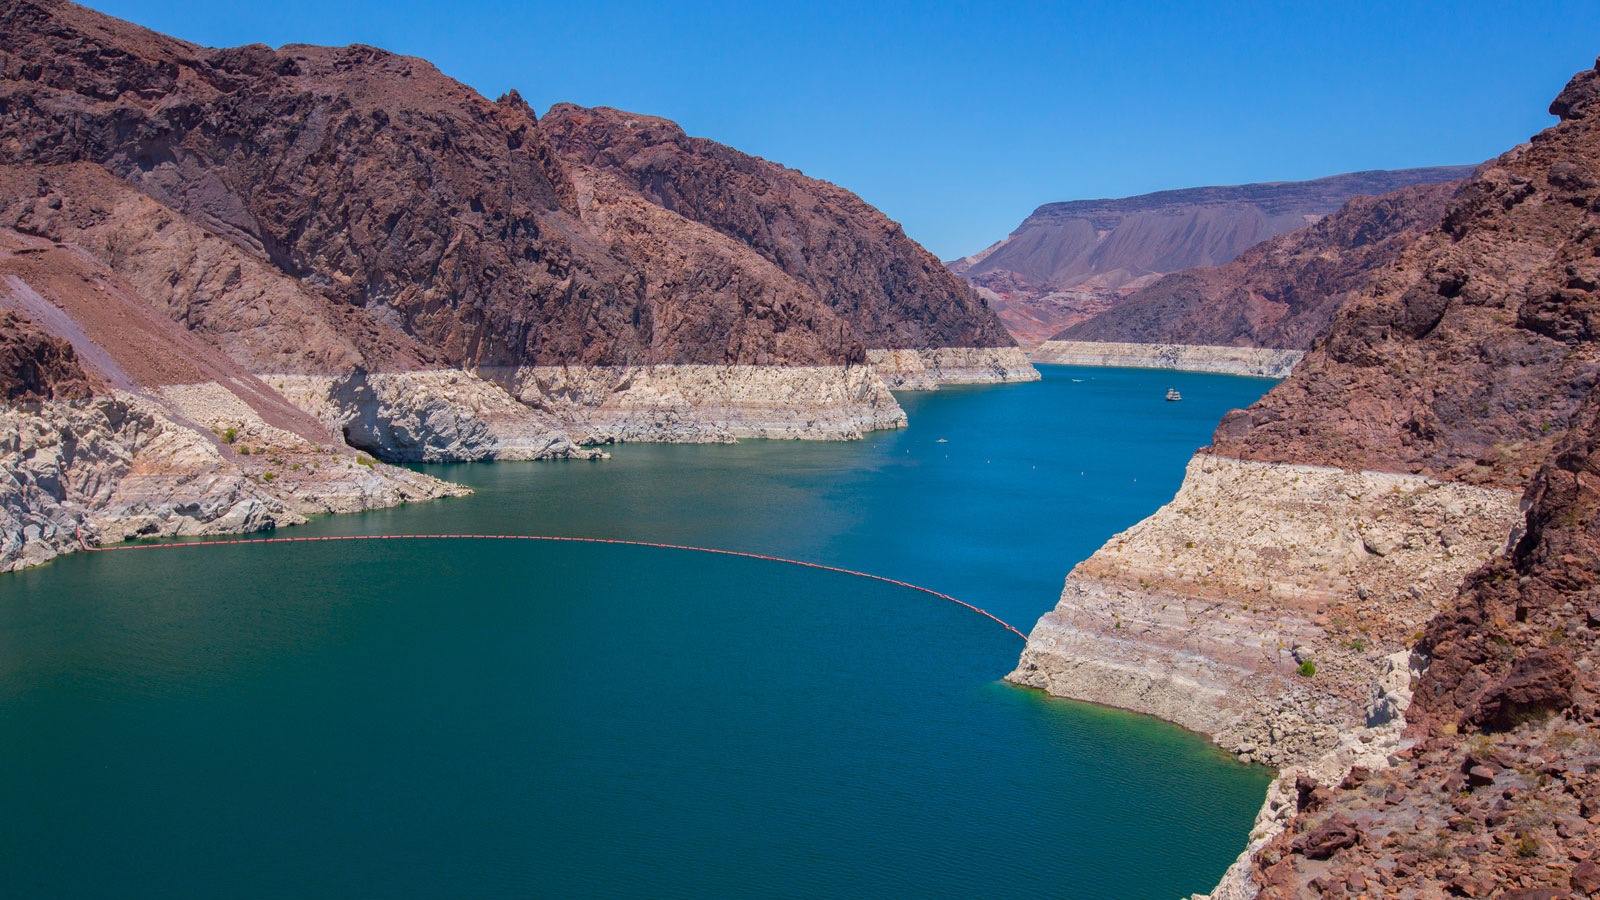 Drought-Stricken Colorado River Basin Could See Additional 20% Drop in Water Flow by 2050 2